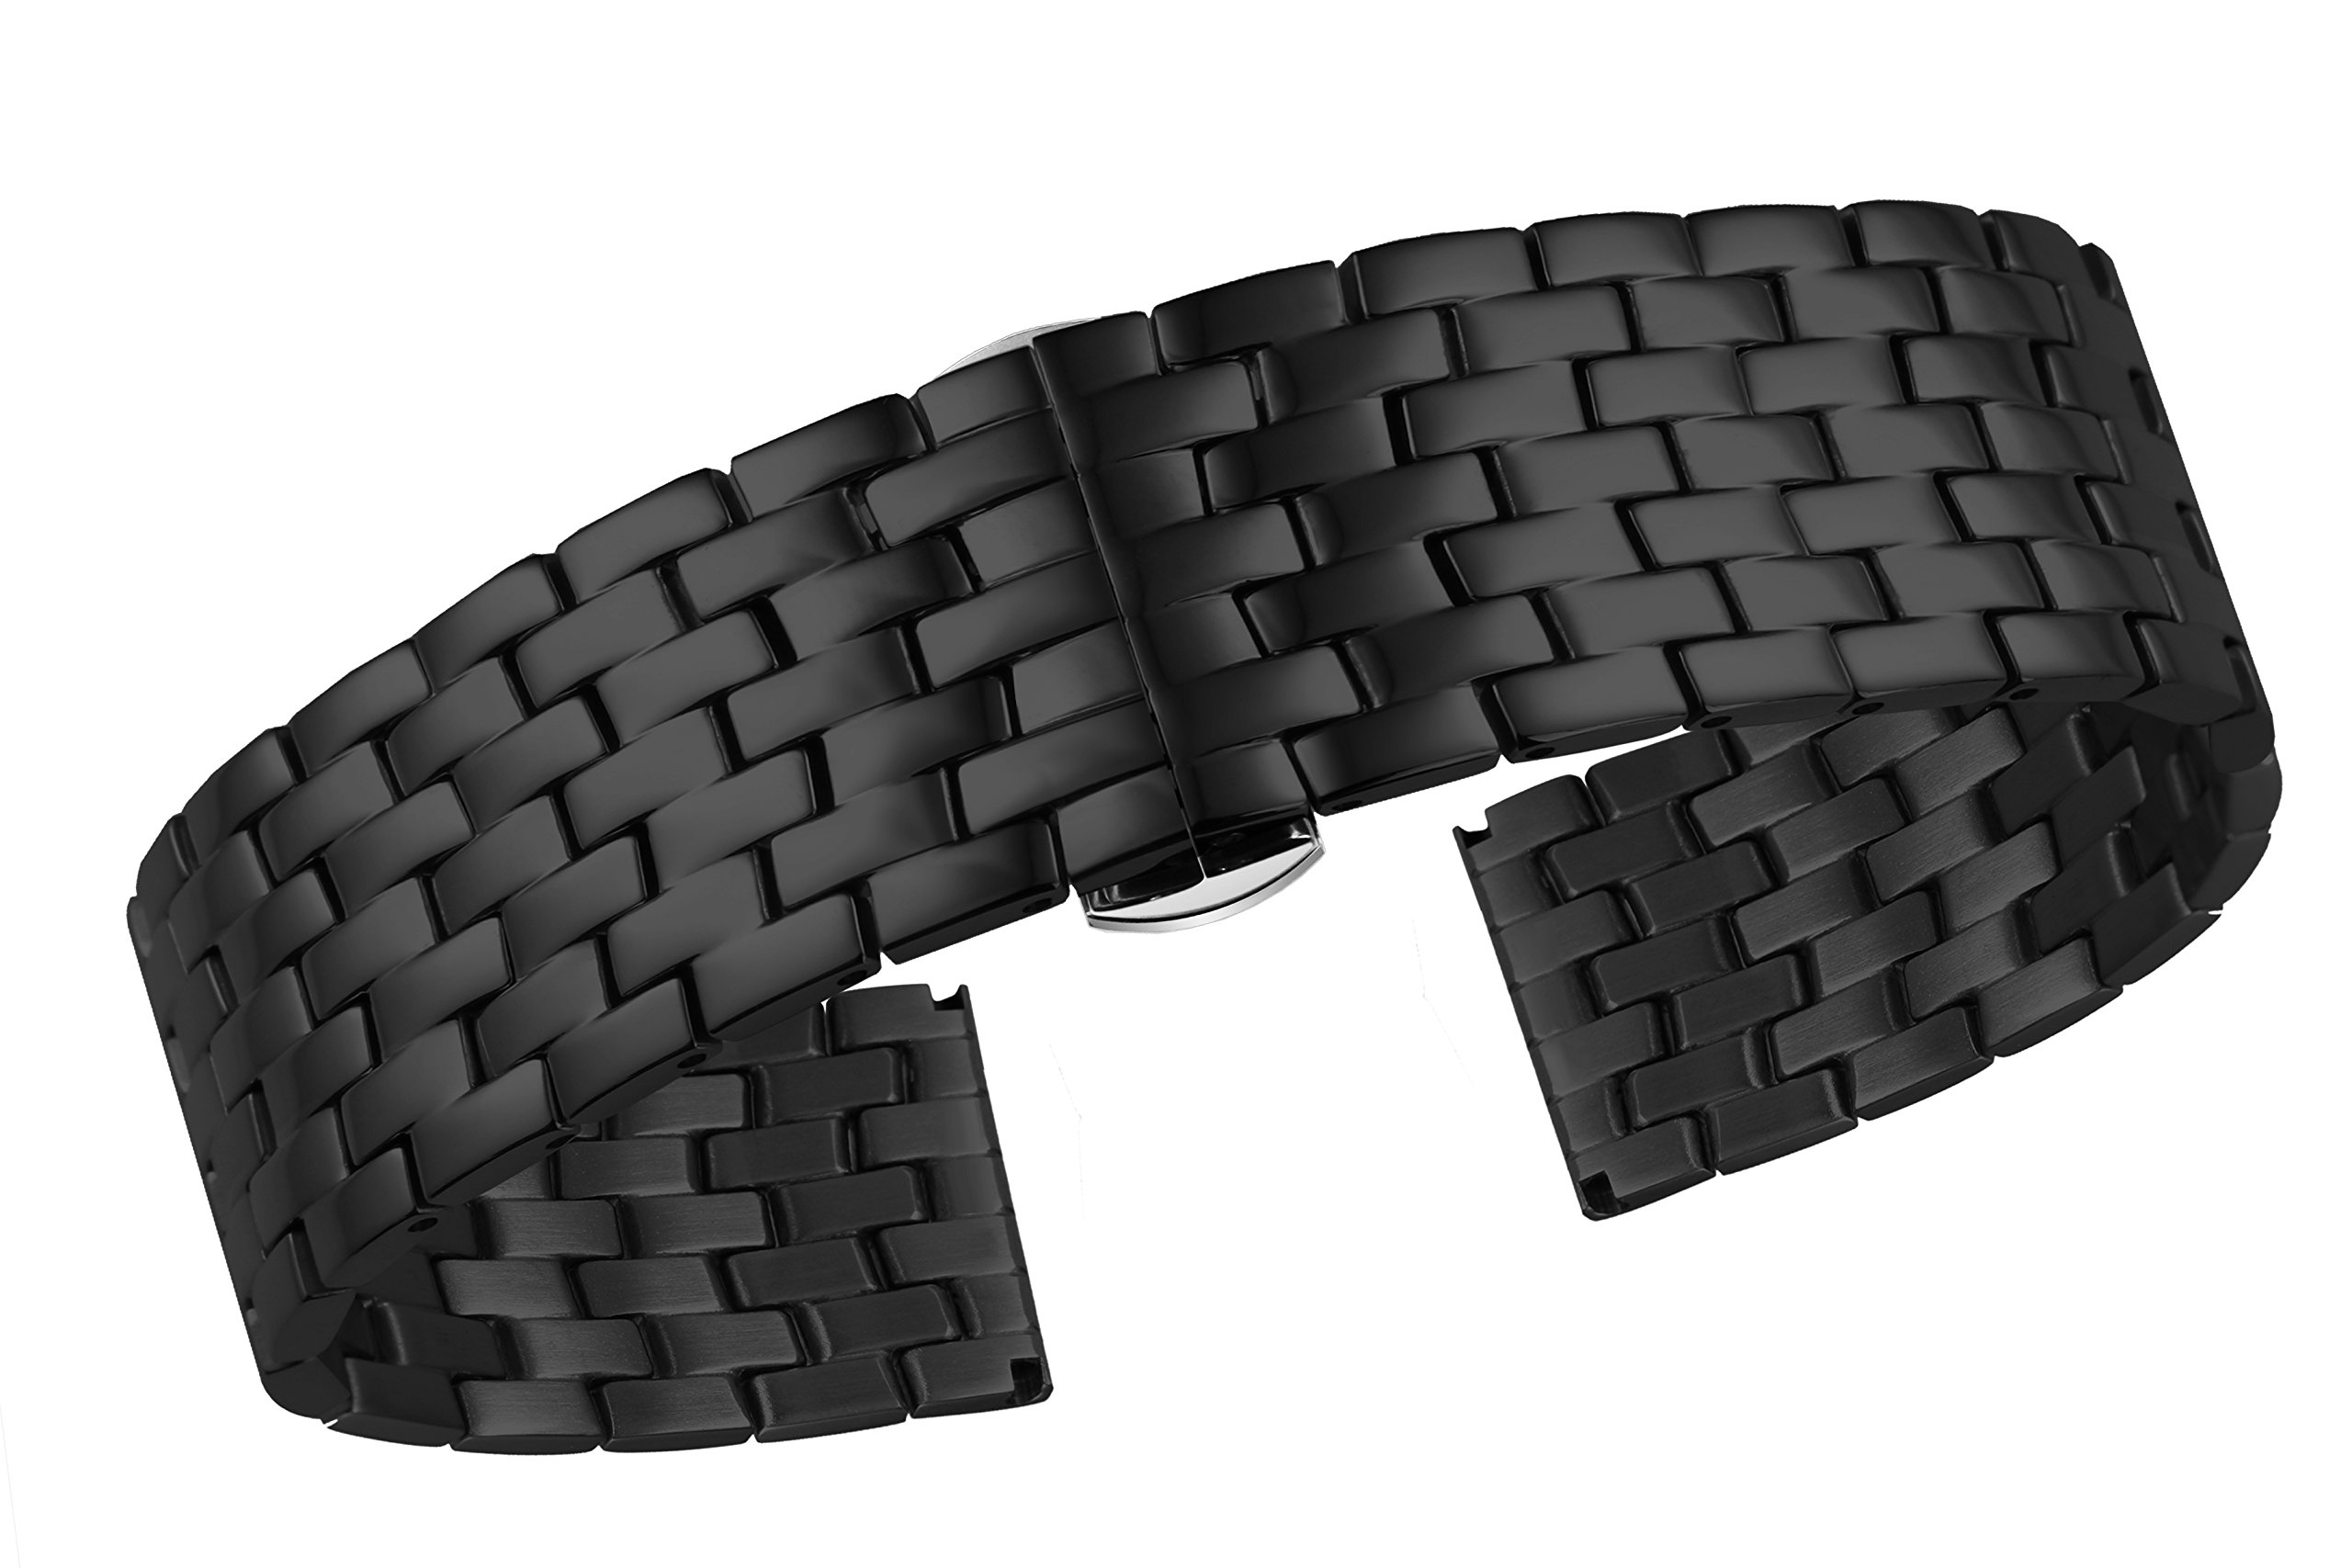 19mm High-Grade 316L Stainless Steel Watch Bands Black Solid Links with Double Locking Closure Buckle